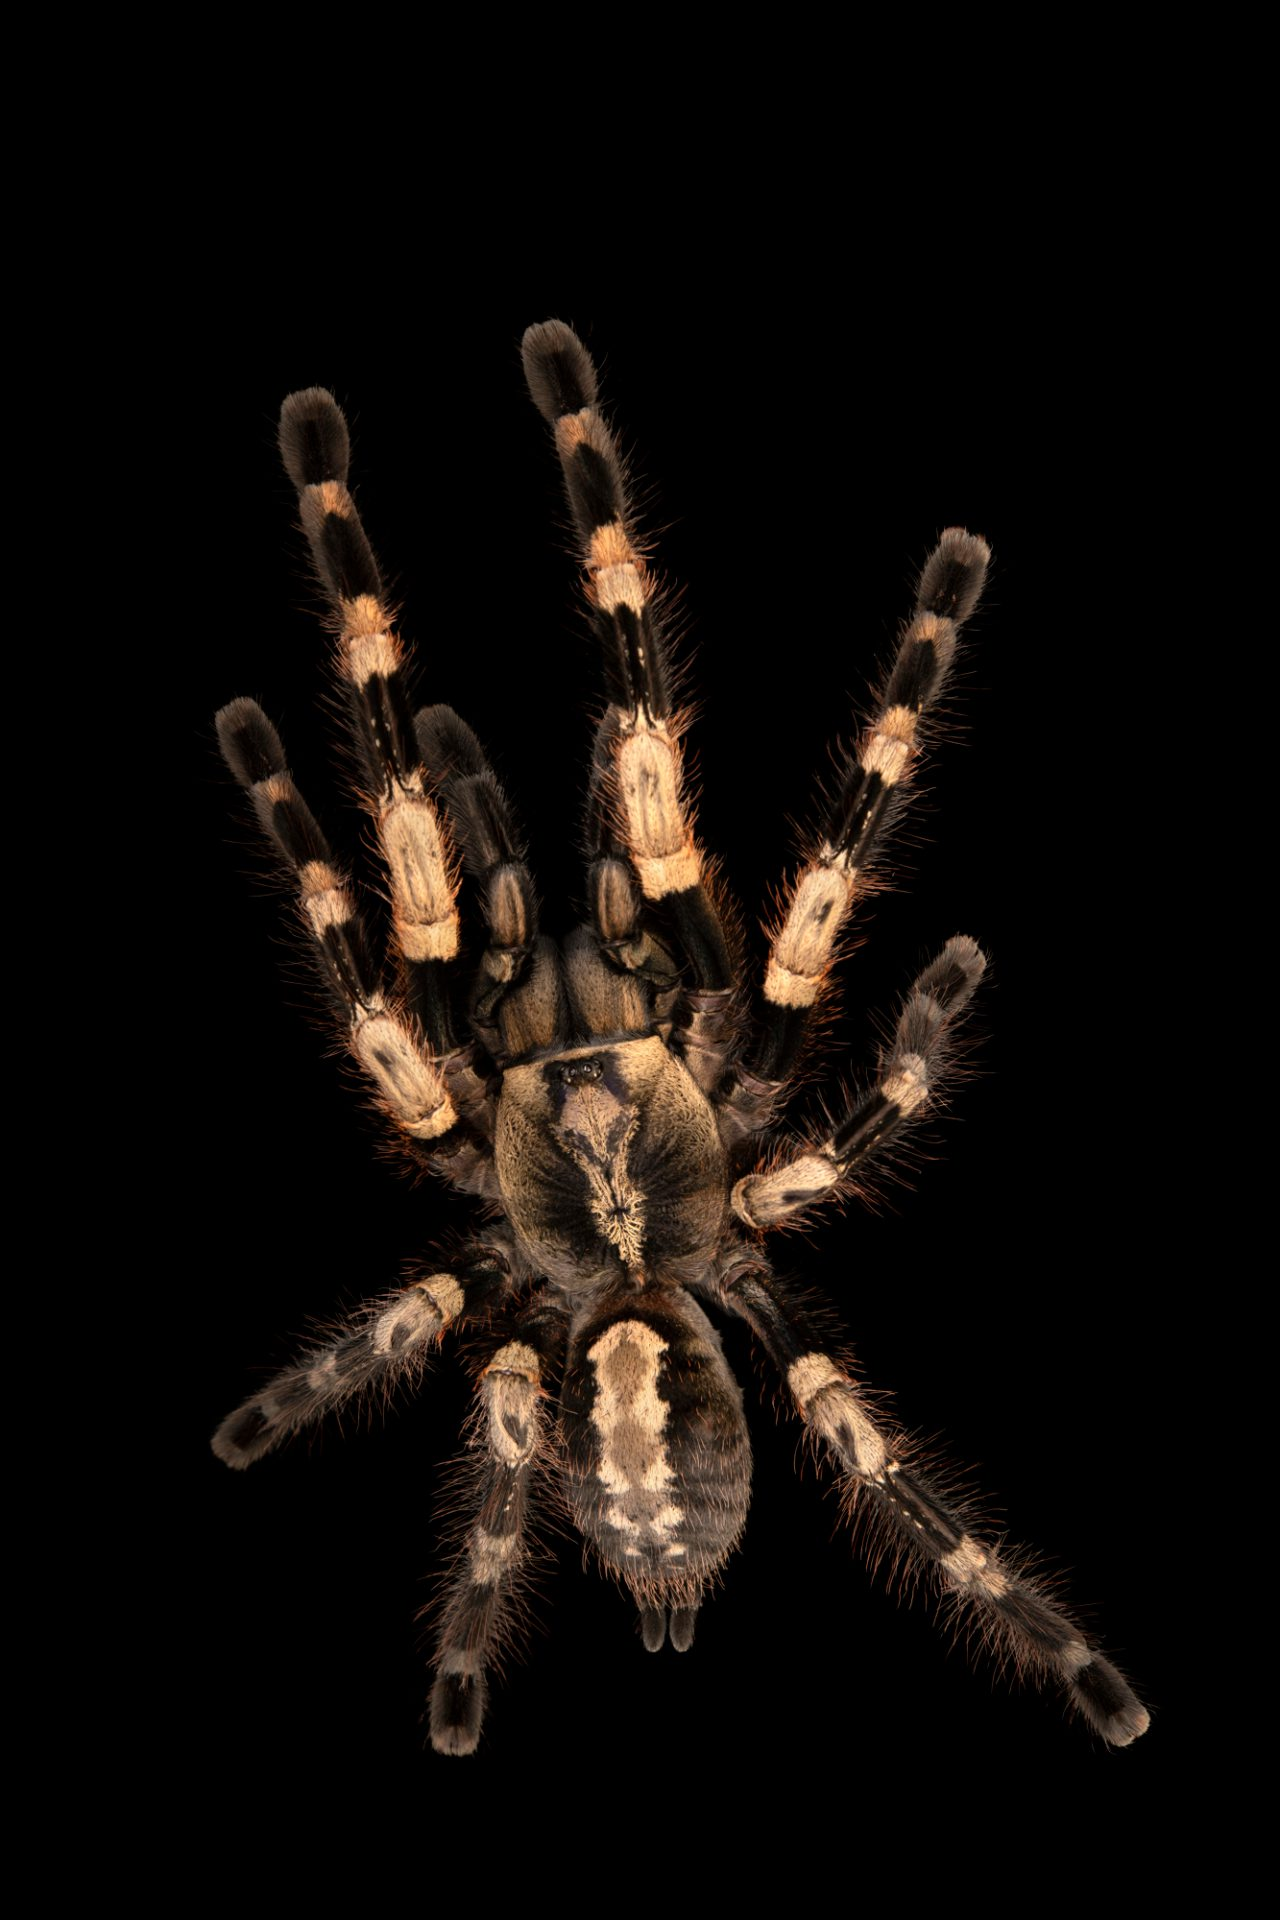 Photo: An endangered Bengal ornamental (Poecilotheria miranda) at the Moscow Zoo.